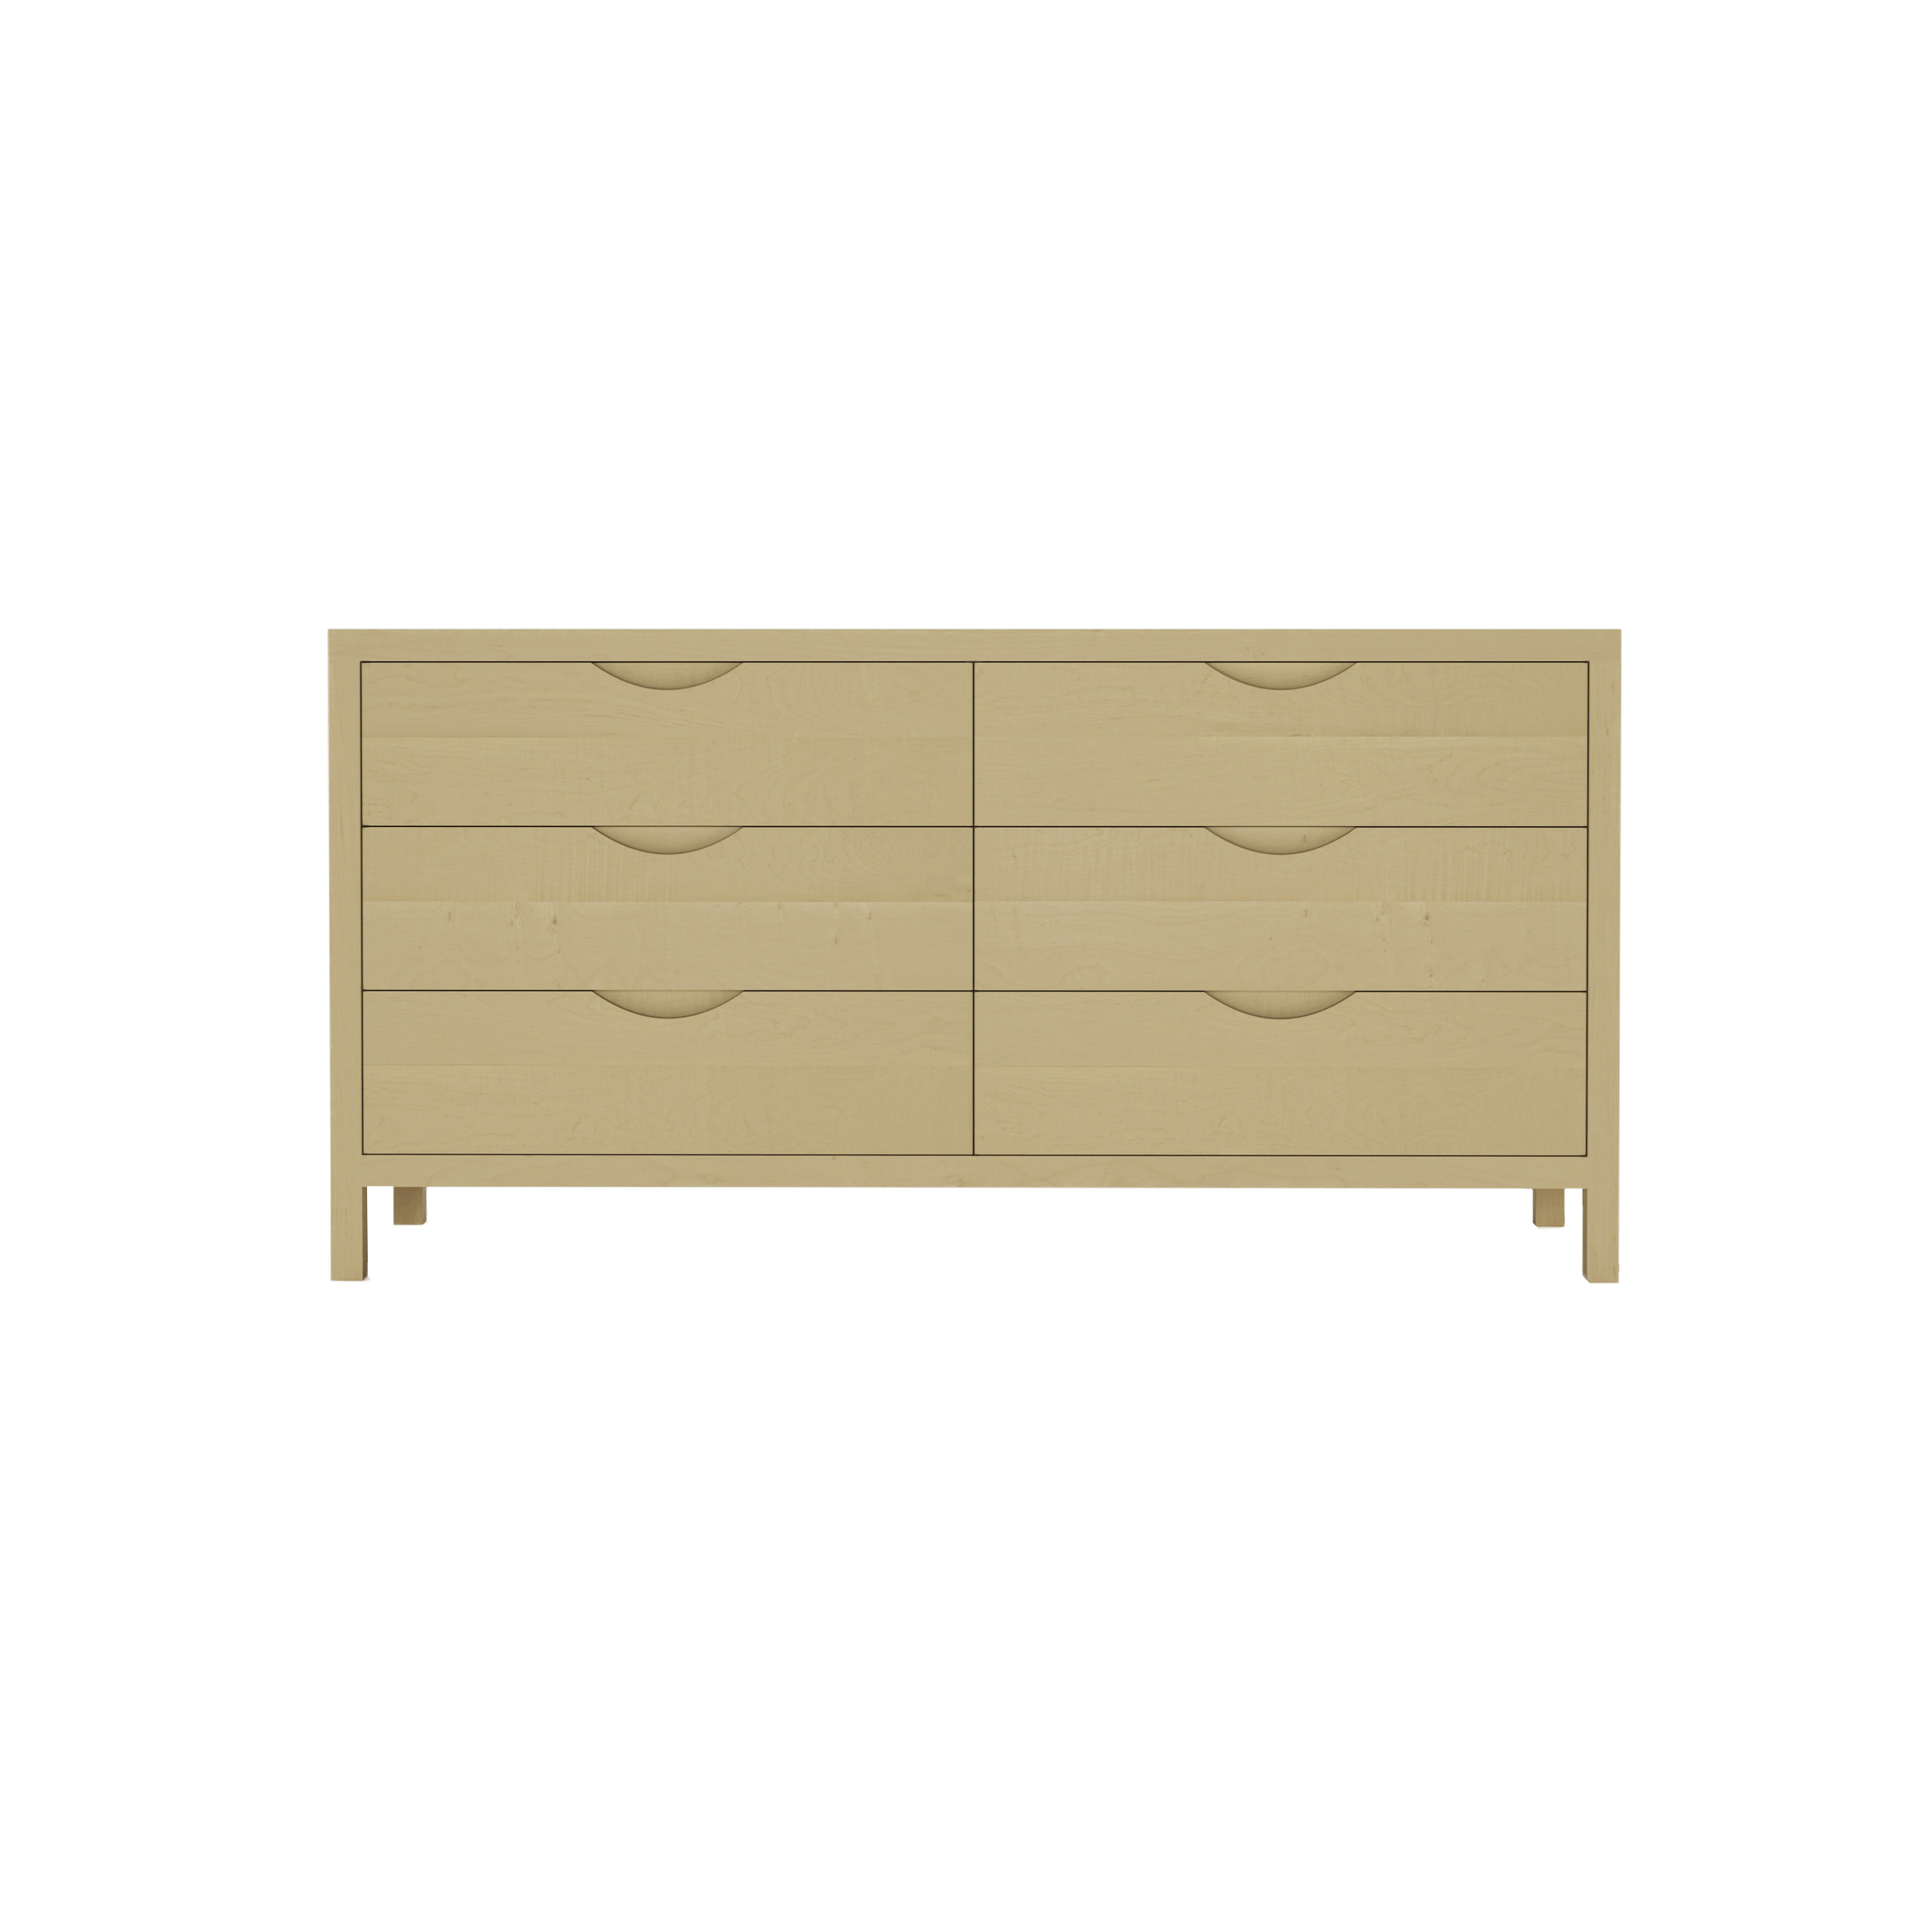 Series 353 Dresser With Six Drawers At 60″ In Width